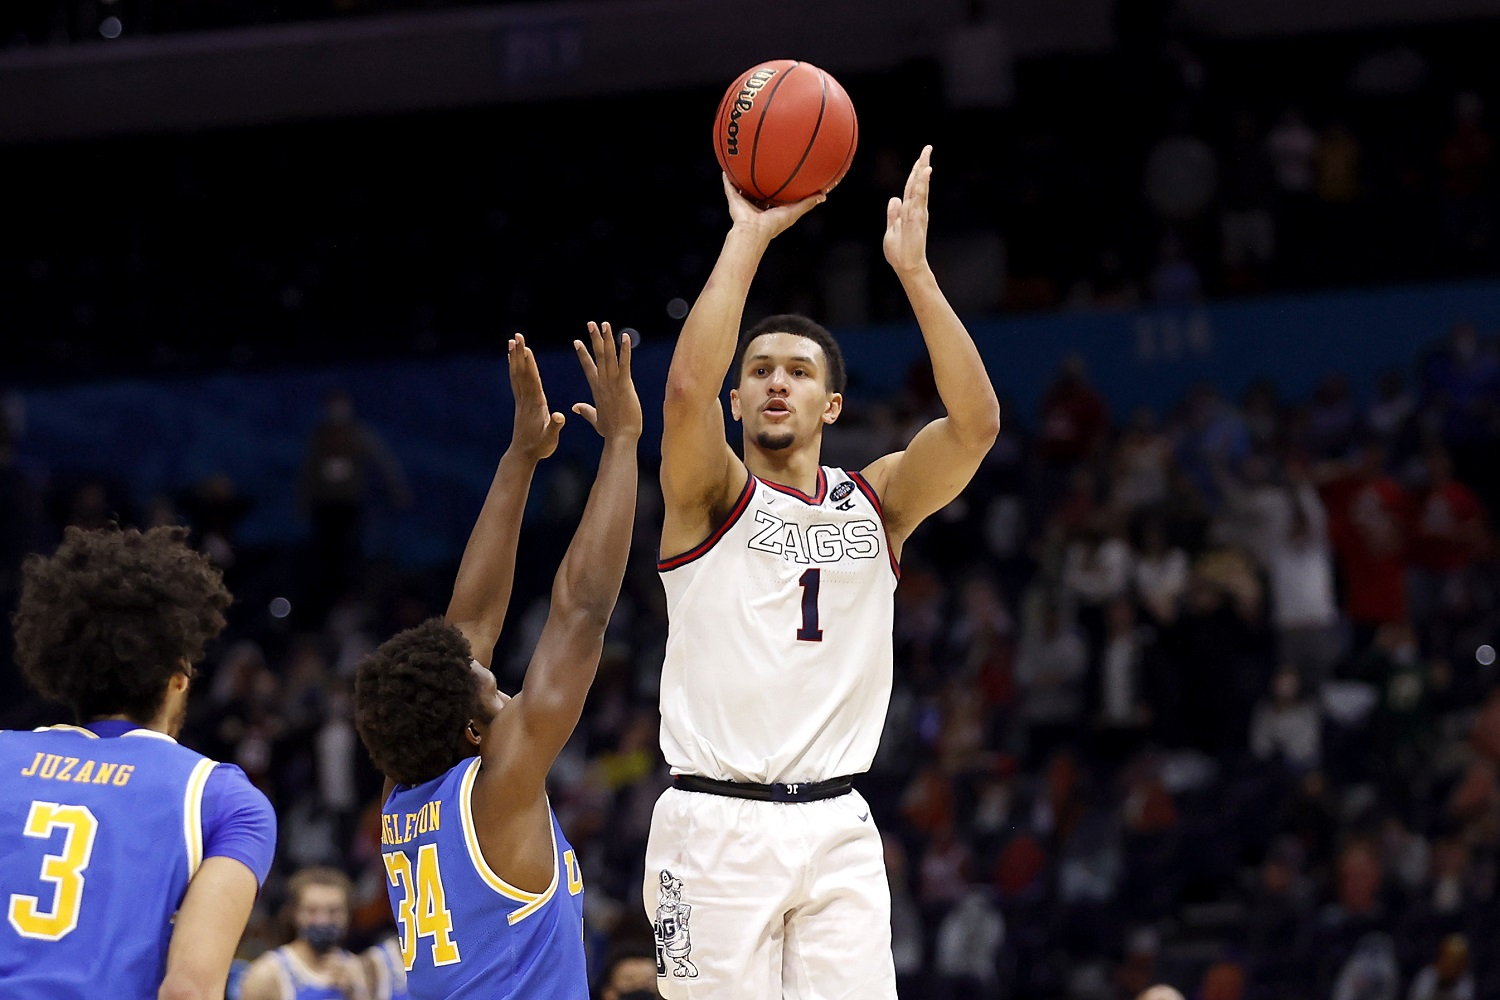 Jalen Suggs of the Gonzaga Bulldogs shoots the game-winning 3-pointer in overtime to defeat the UCLA Bruins, 93-90, during the 2021 NCAA Tournament semifinal at Lucas Oil Stadium in Indianapolis. | Photo by Jamie Squire/Getty Images